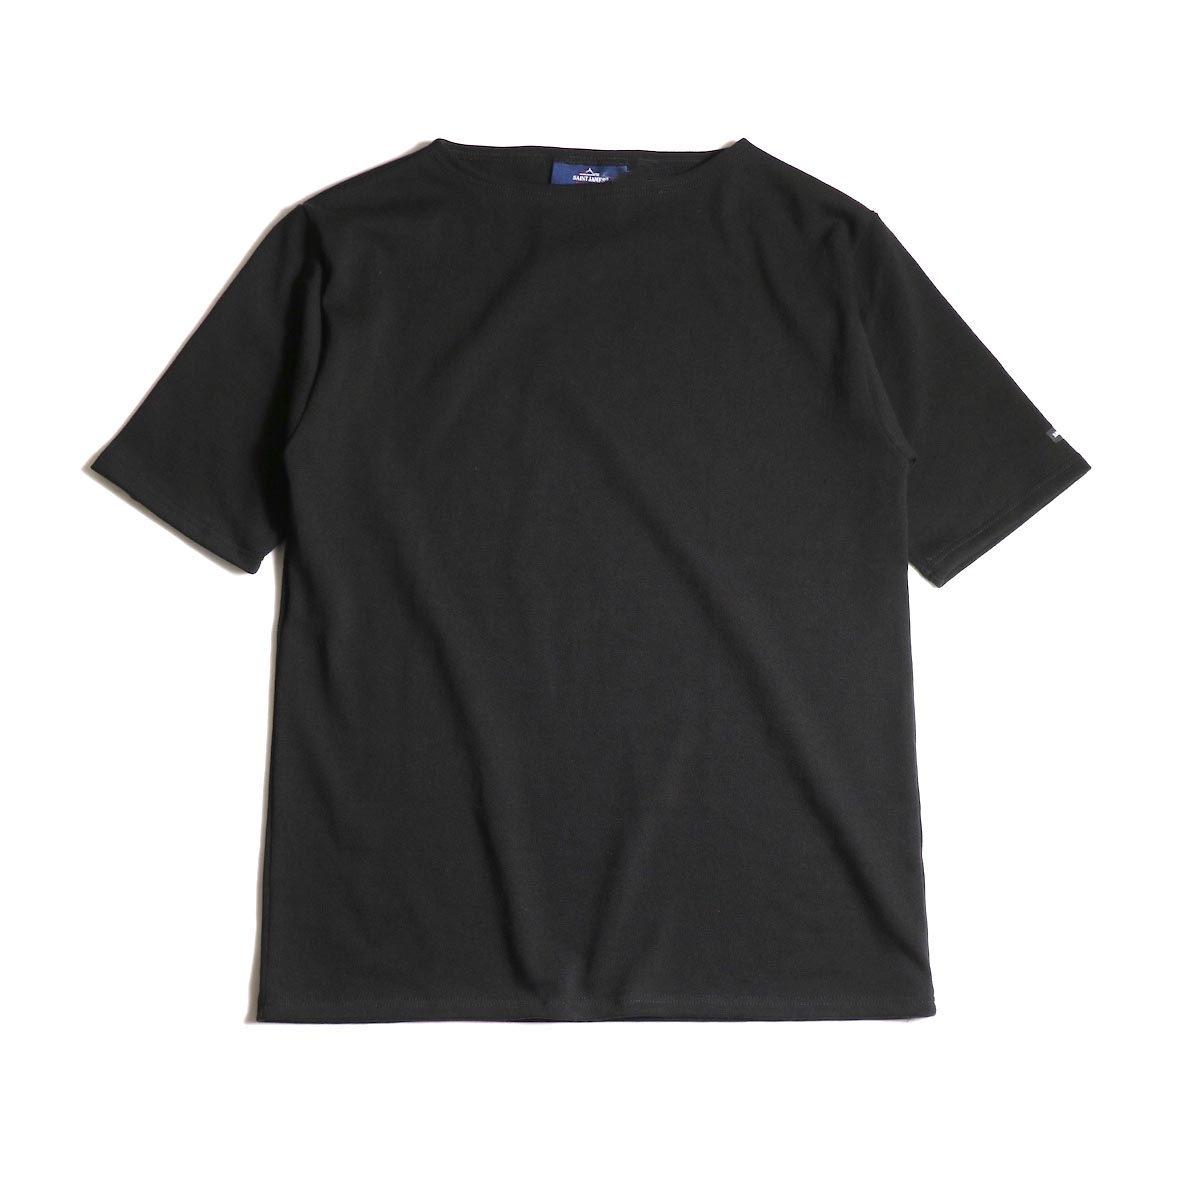 SAINT JAMES / OUESSANT LIGHT SHORT SLEEVE (Noir)